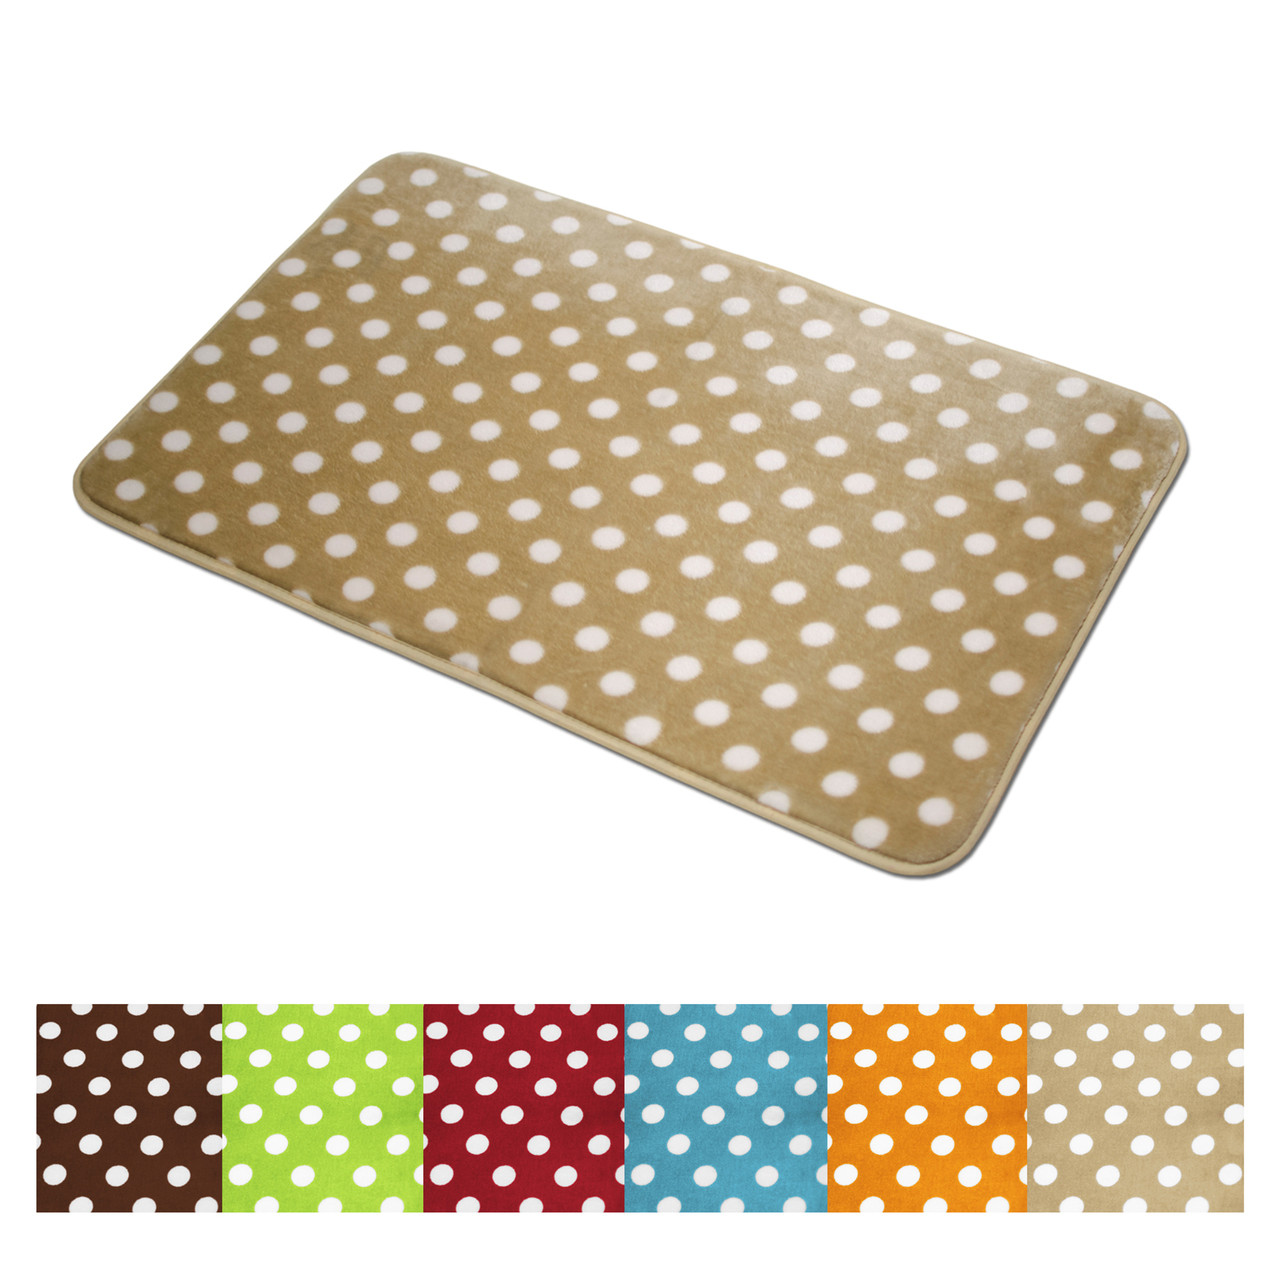 Bathroom mat polka dots microfiber soft plush lightweight for Big w bathroom mats